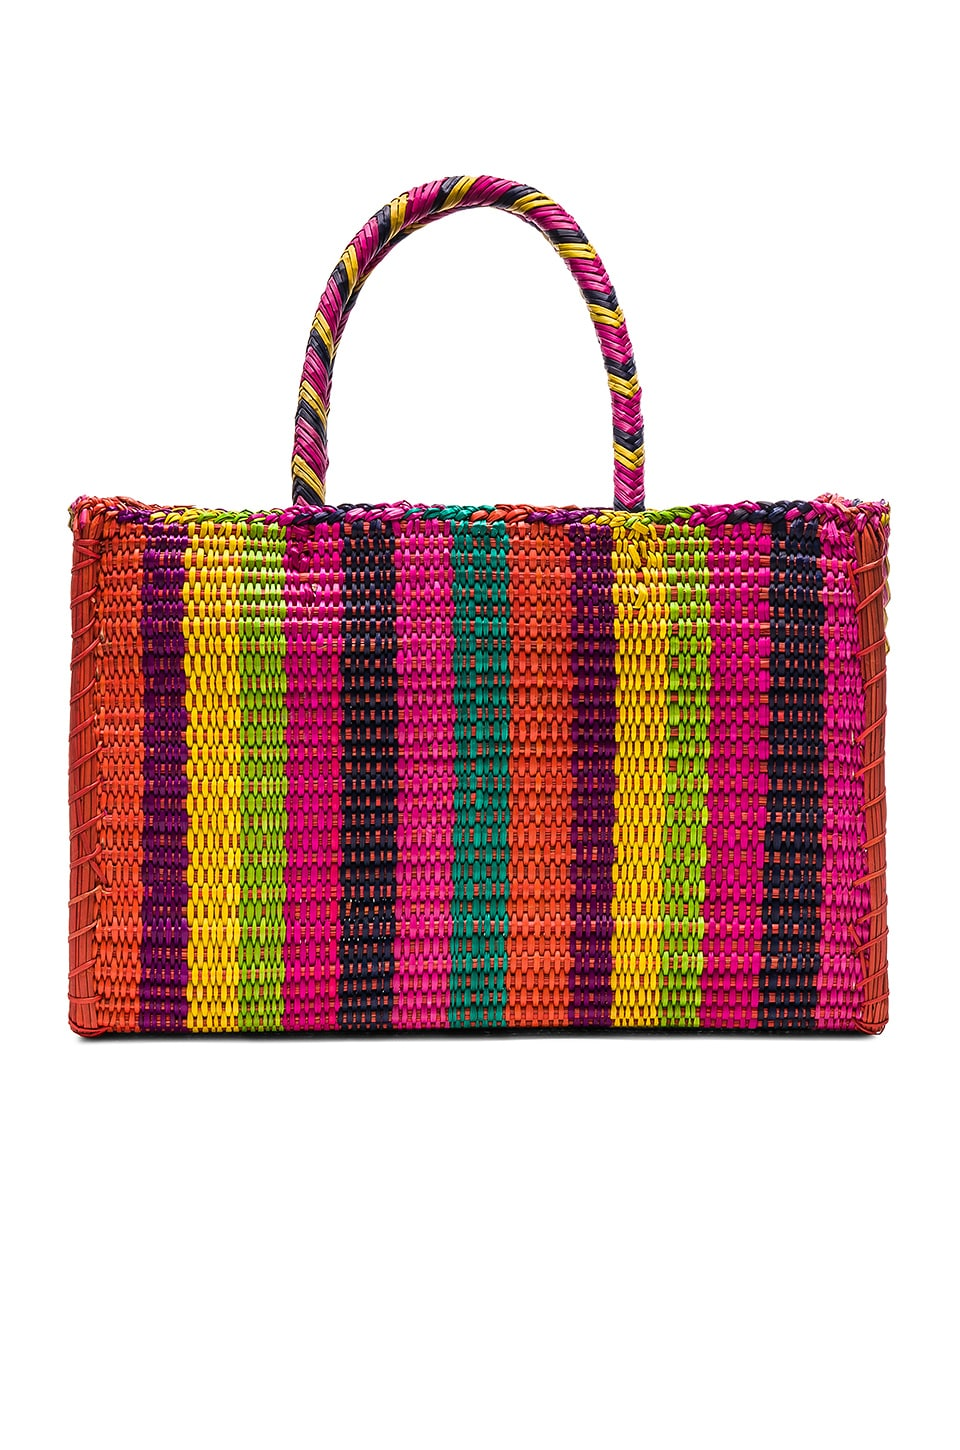 Pitusa Pinata Bag in Multi